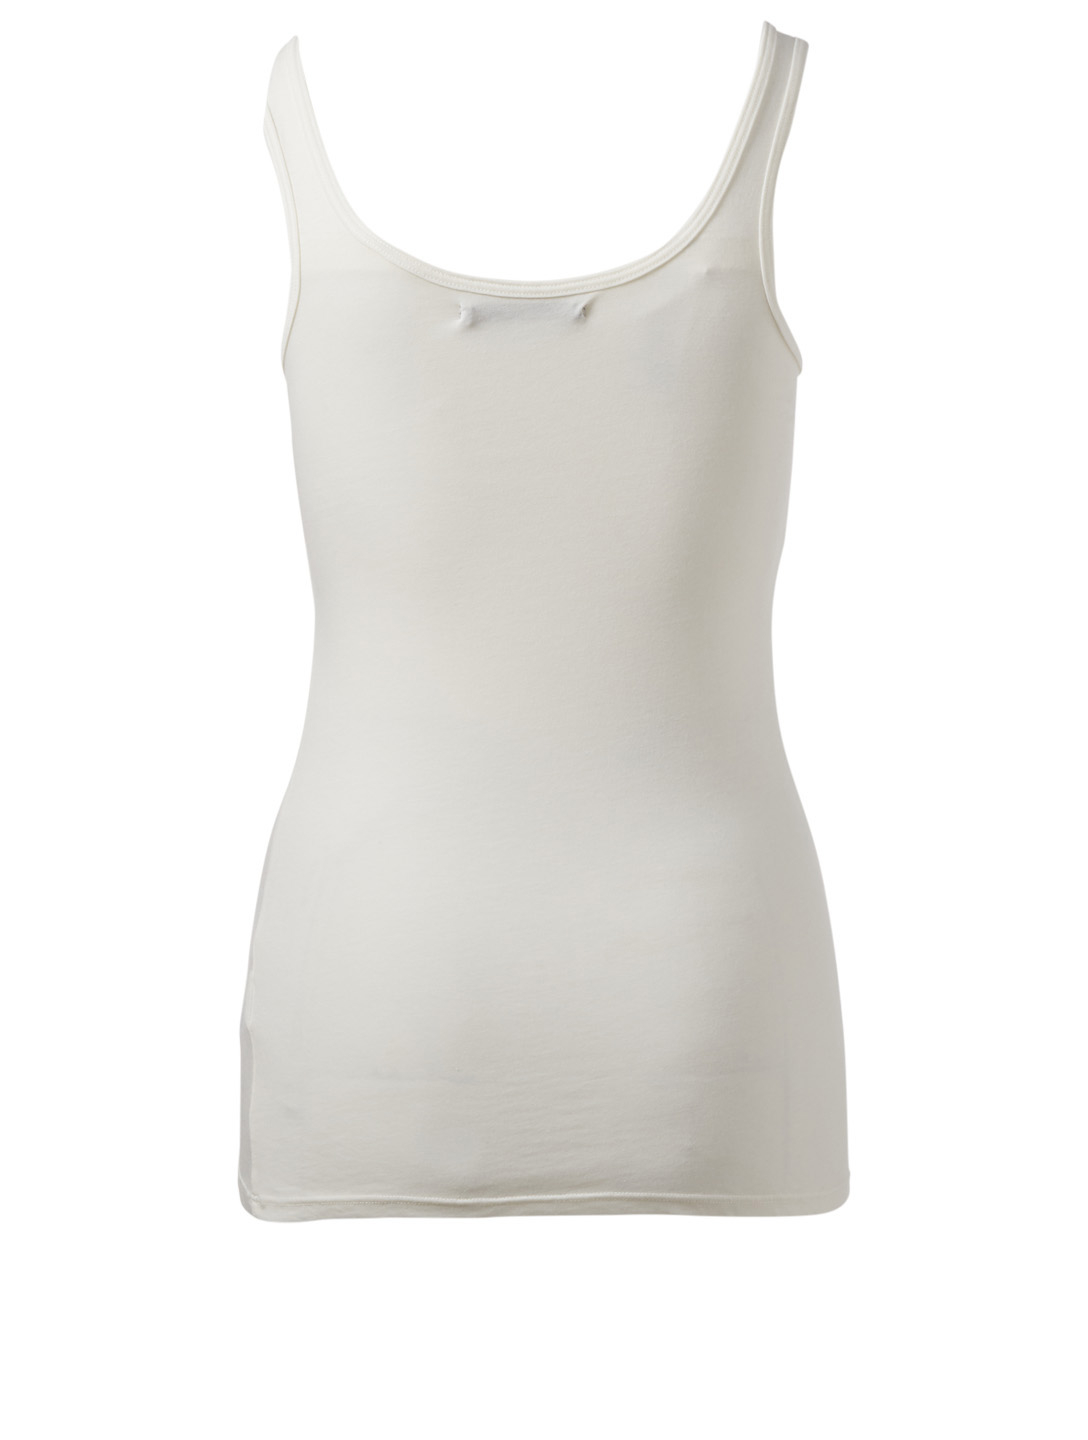 OBAKKI Essential Heathered Tank Top H Project White